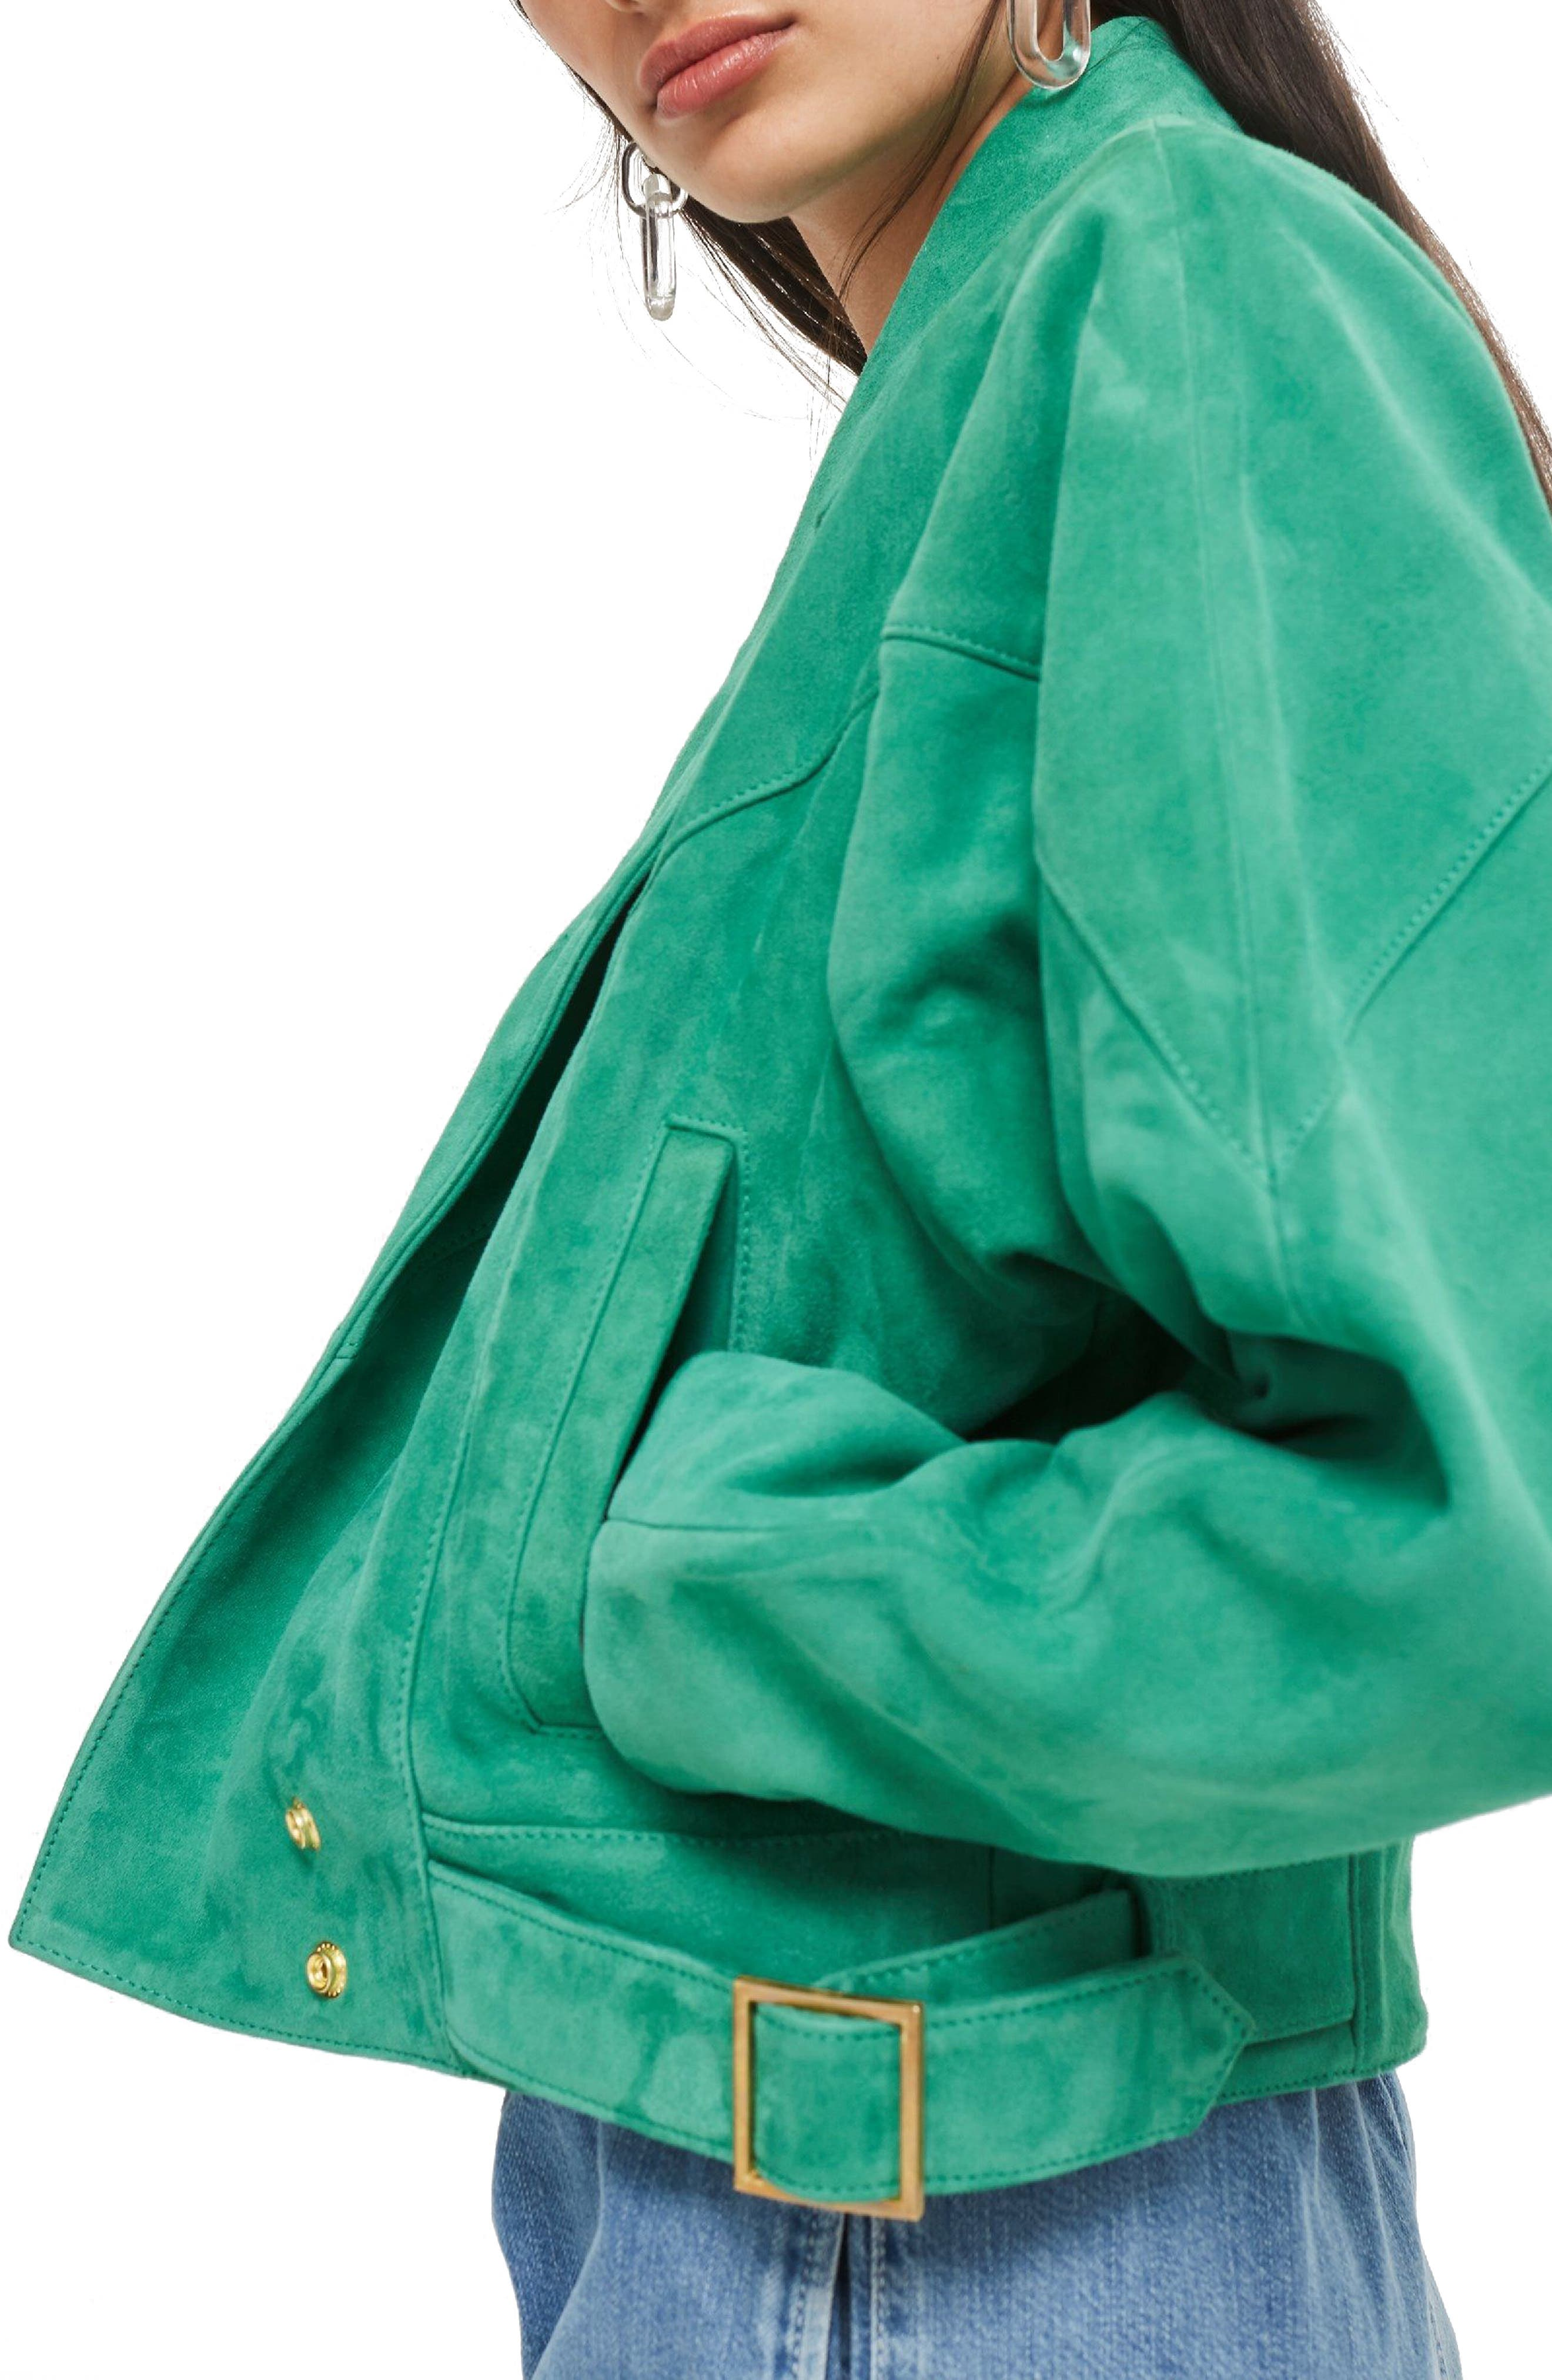 Hawkes Suede Jacket,                             Alternate thumbnail 3, color,                             Green